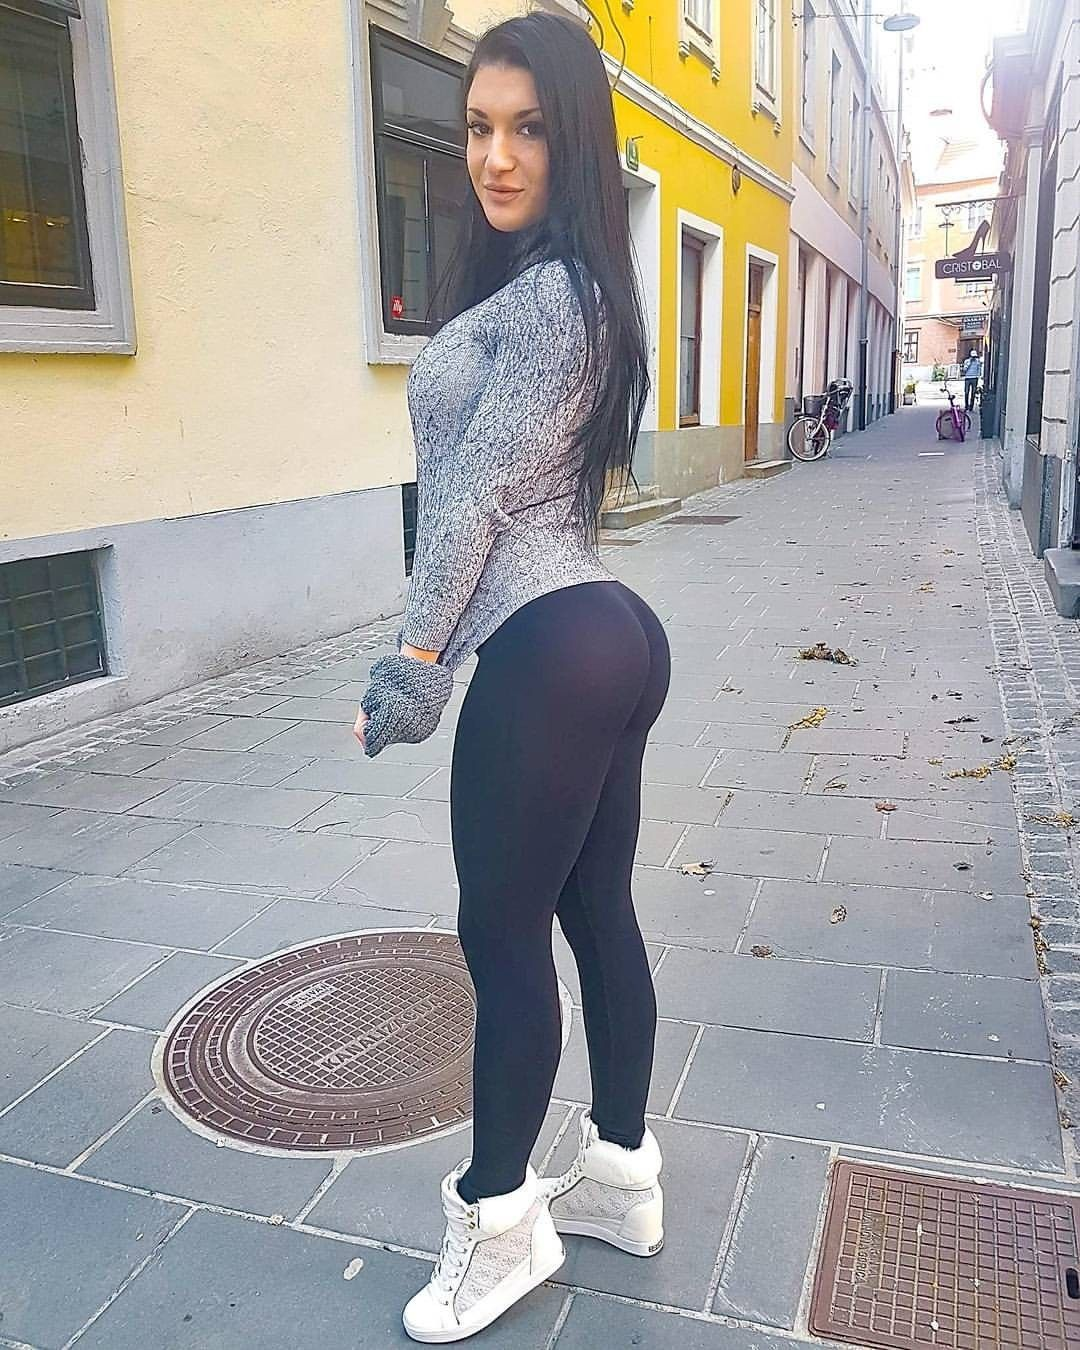 c3850c6560440 Outdoor Workouts · Crossfit Games · Latina hottie Girls In Leggings, Yoga  Leggings, Yoga Pants, Leggings Are Not Pants